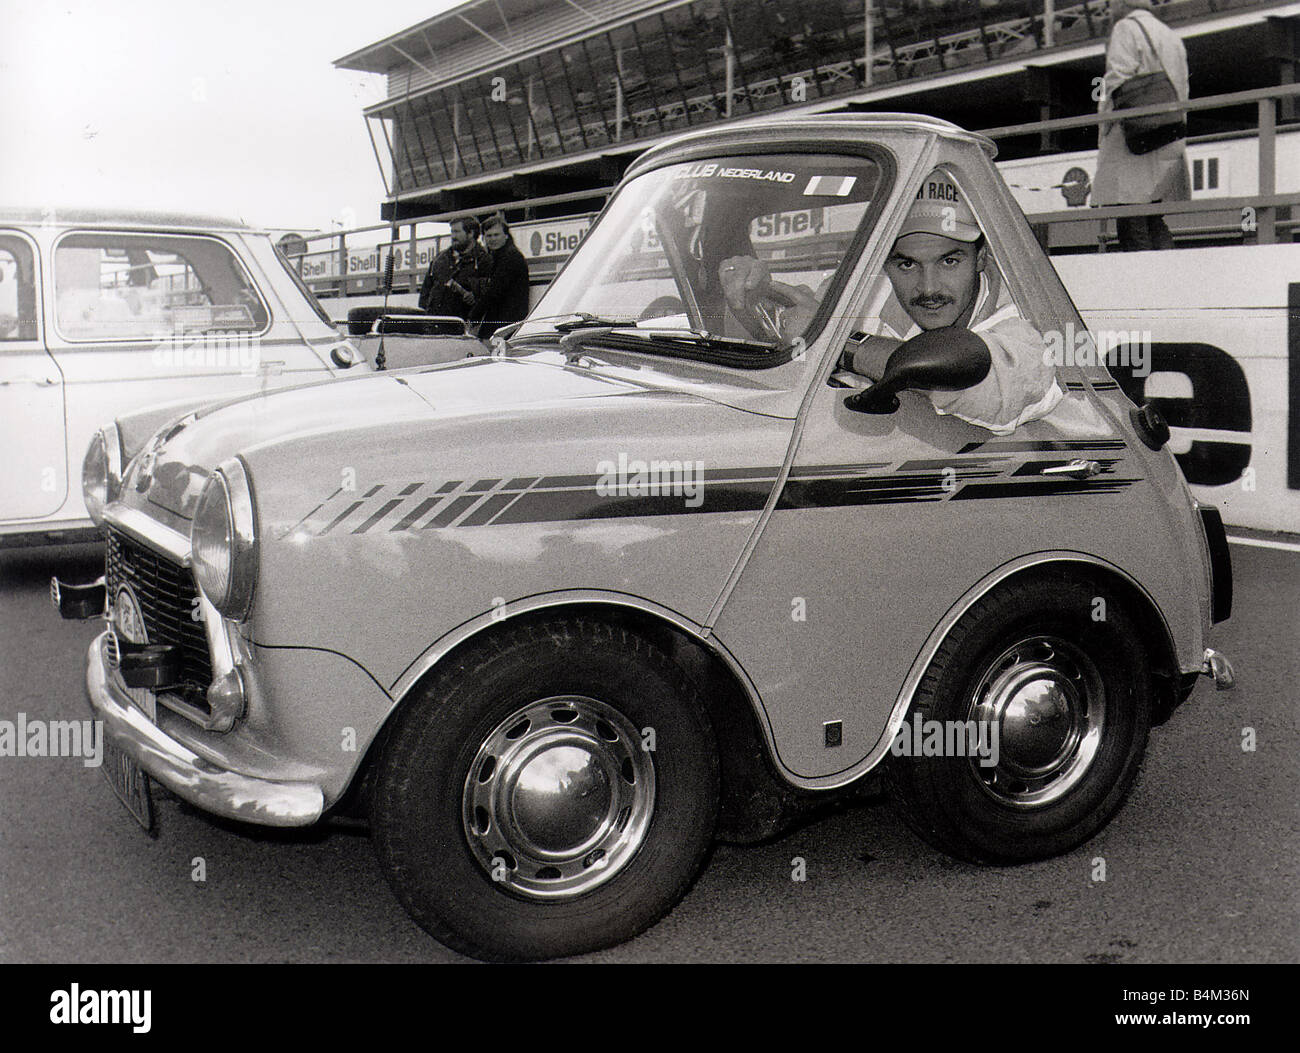 The Mini Car The smallest mini in the world built by owner ...